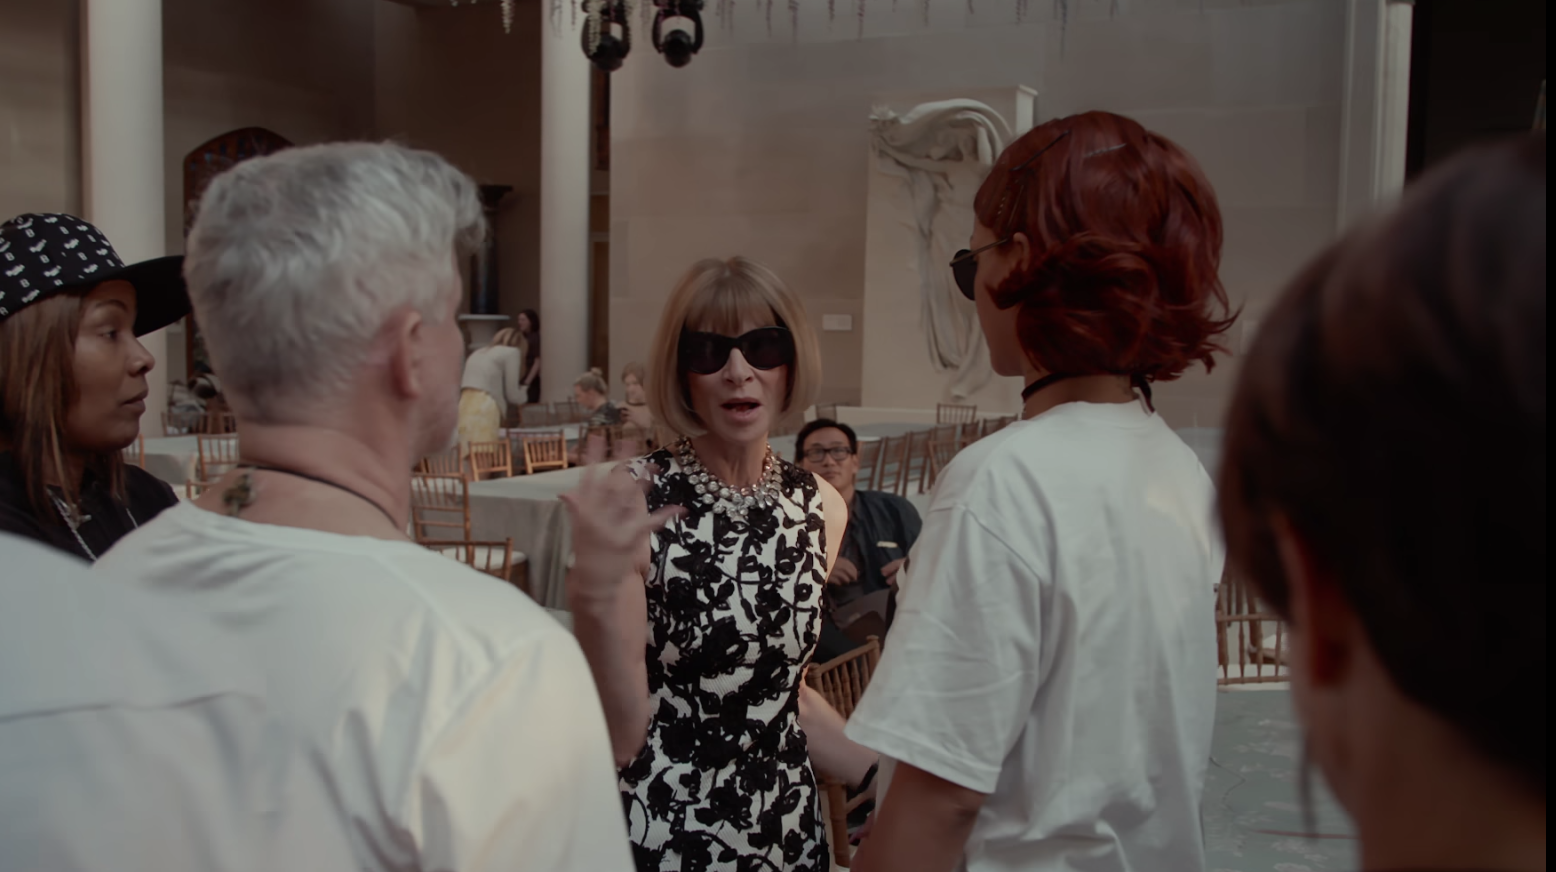 Anna Wintour talking to Rihanna and her team.